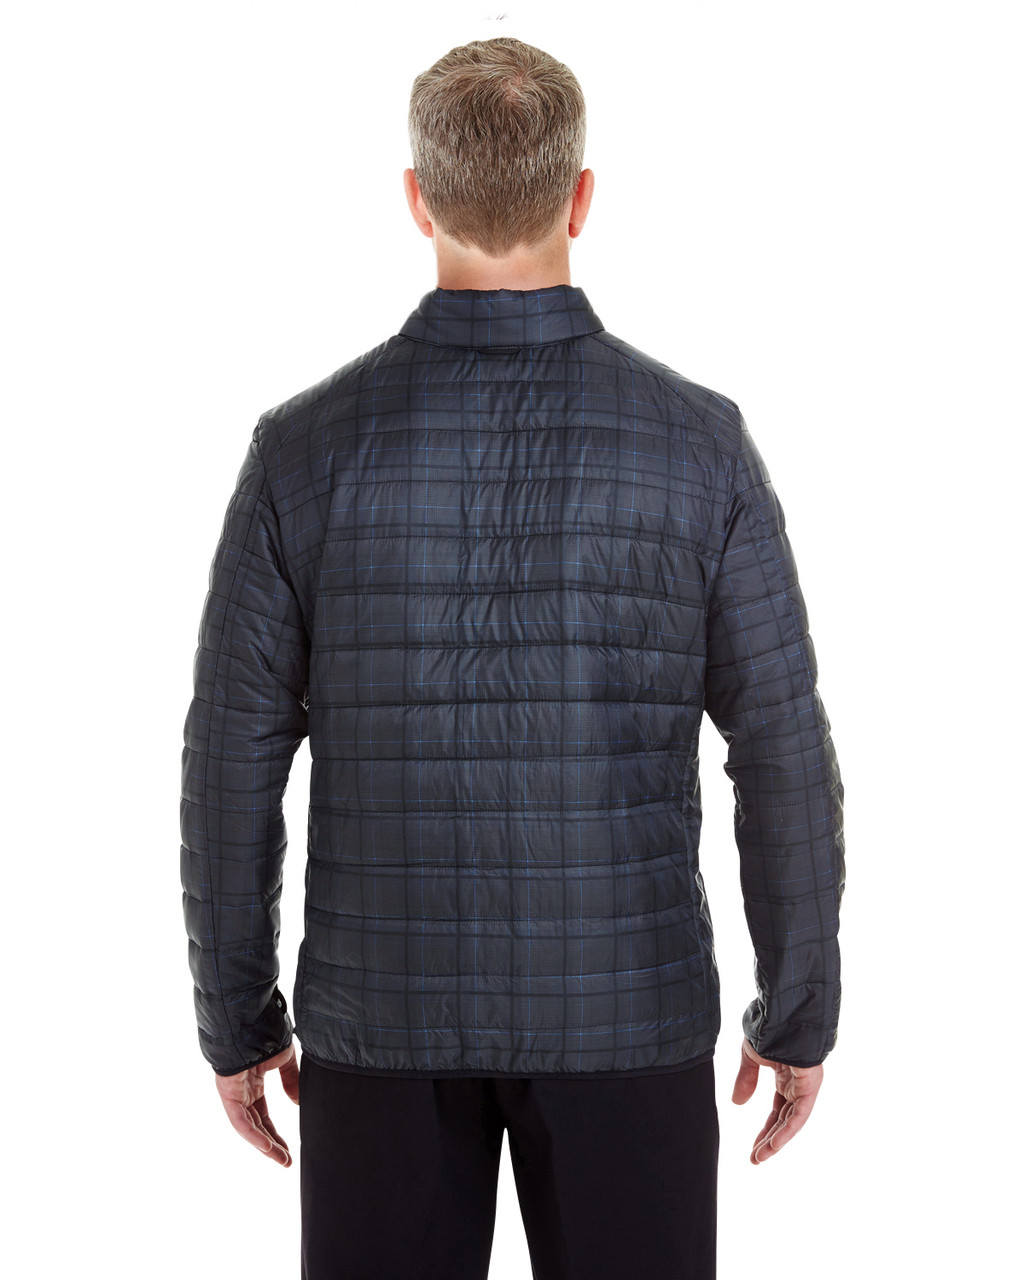 Grid - BACK - NE701 Ash City - North End Men's Portal Interactive Printed Packable Puffer Jacket | Blankclothing.ca